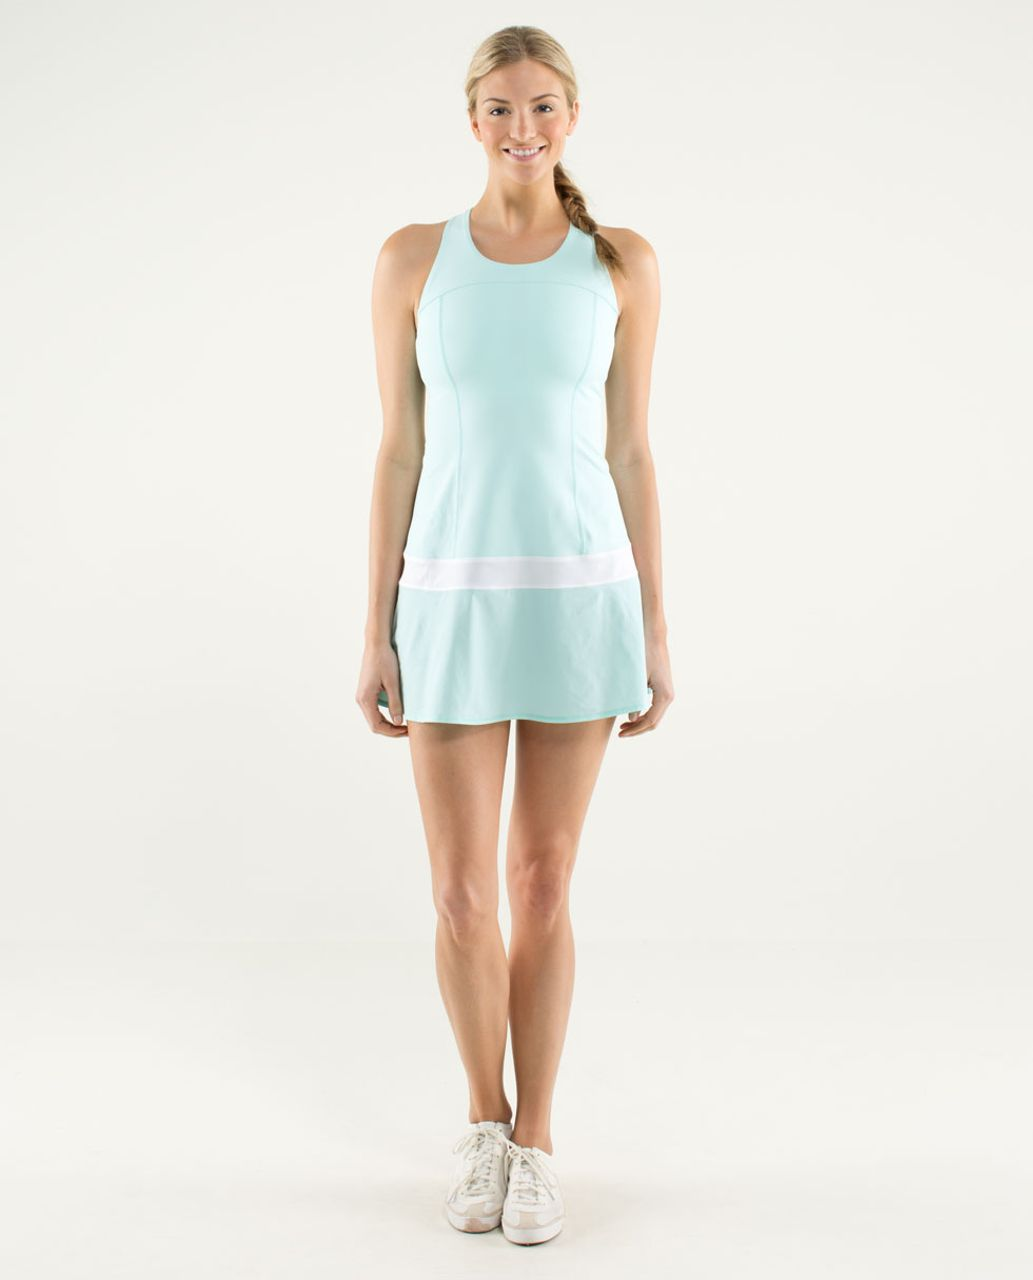 431abcc205 Lululemon Hot Hitter Dress - Aquamarine / White - lulu fanatics